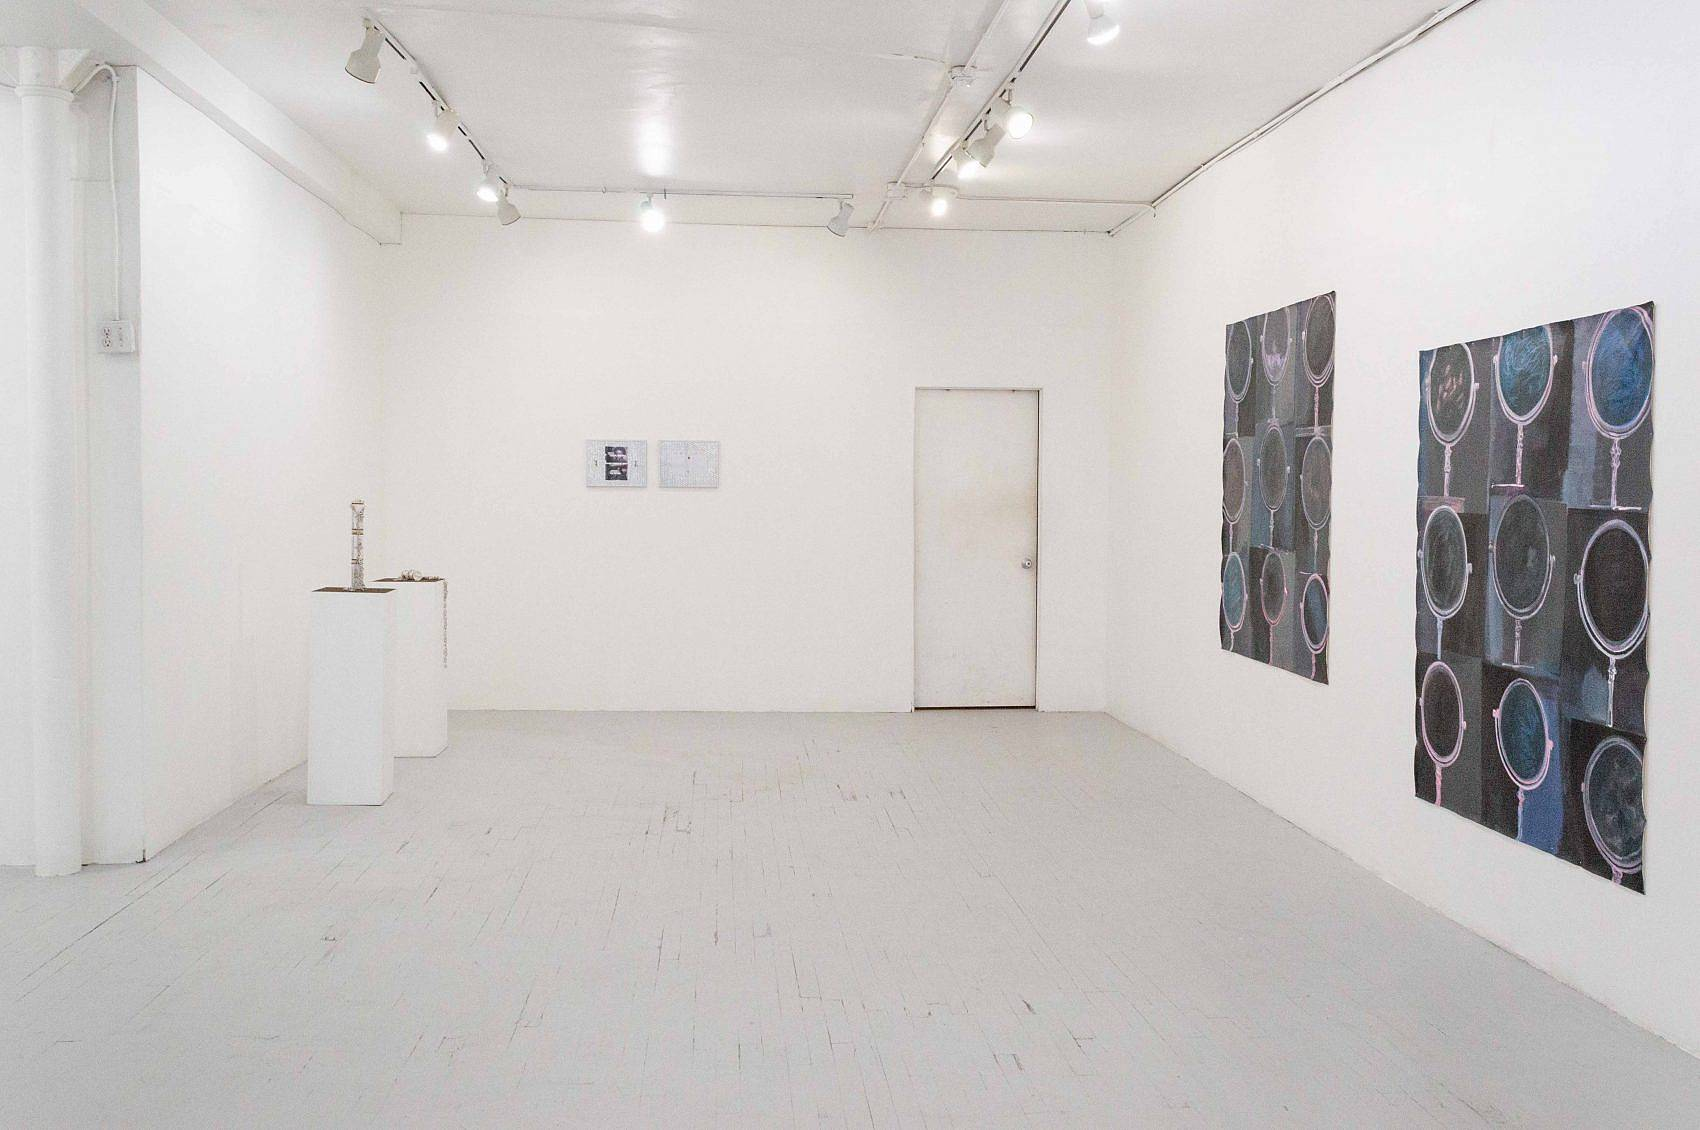 This is an installation shot of the exhibition. On the left wall is Zack Ingram's piece